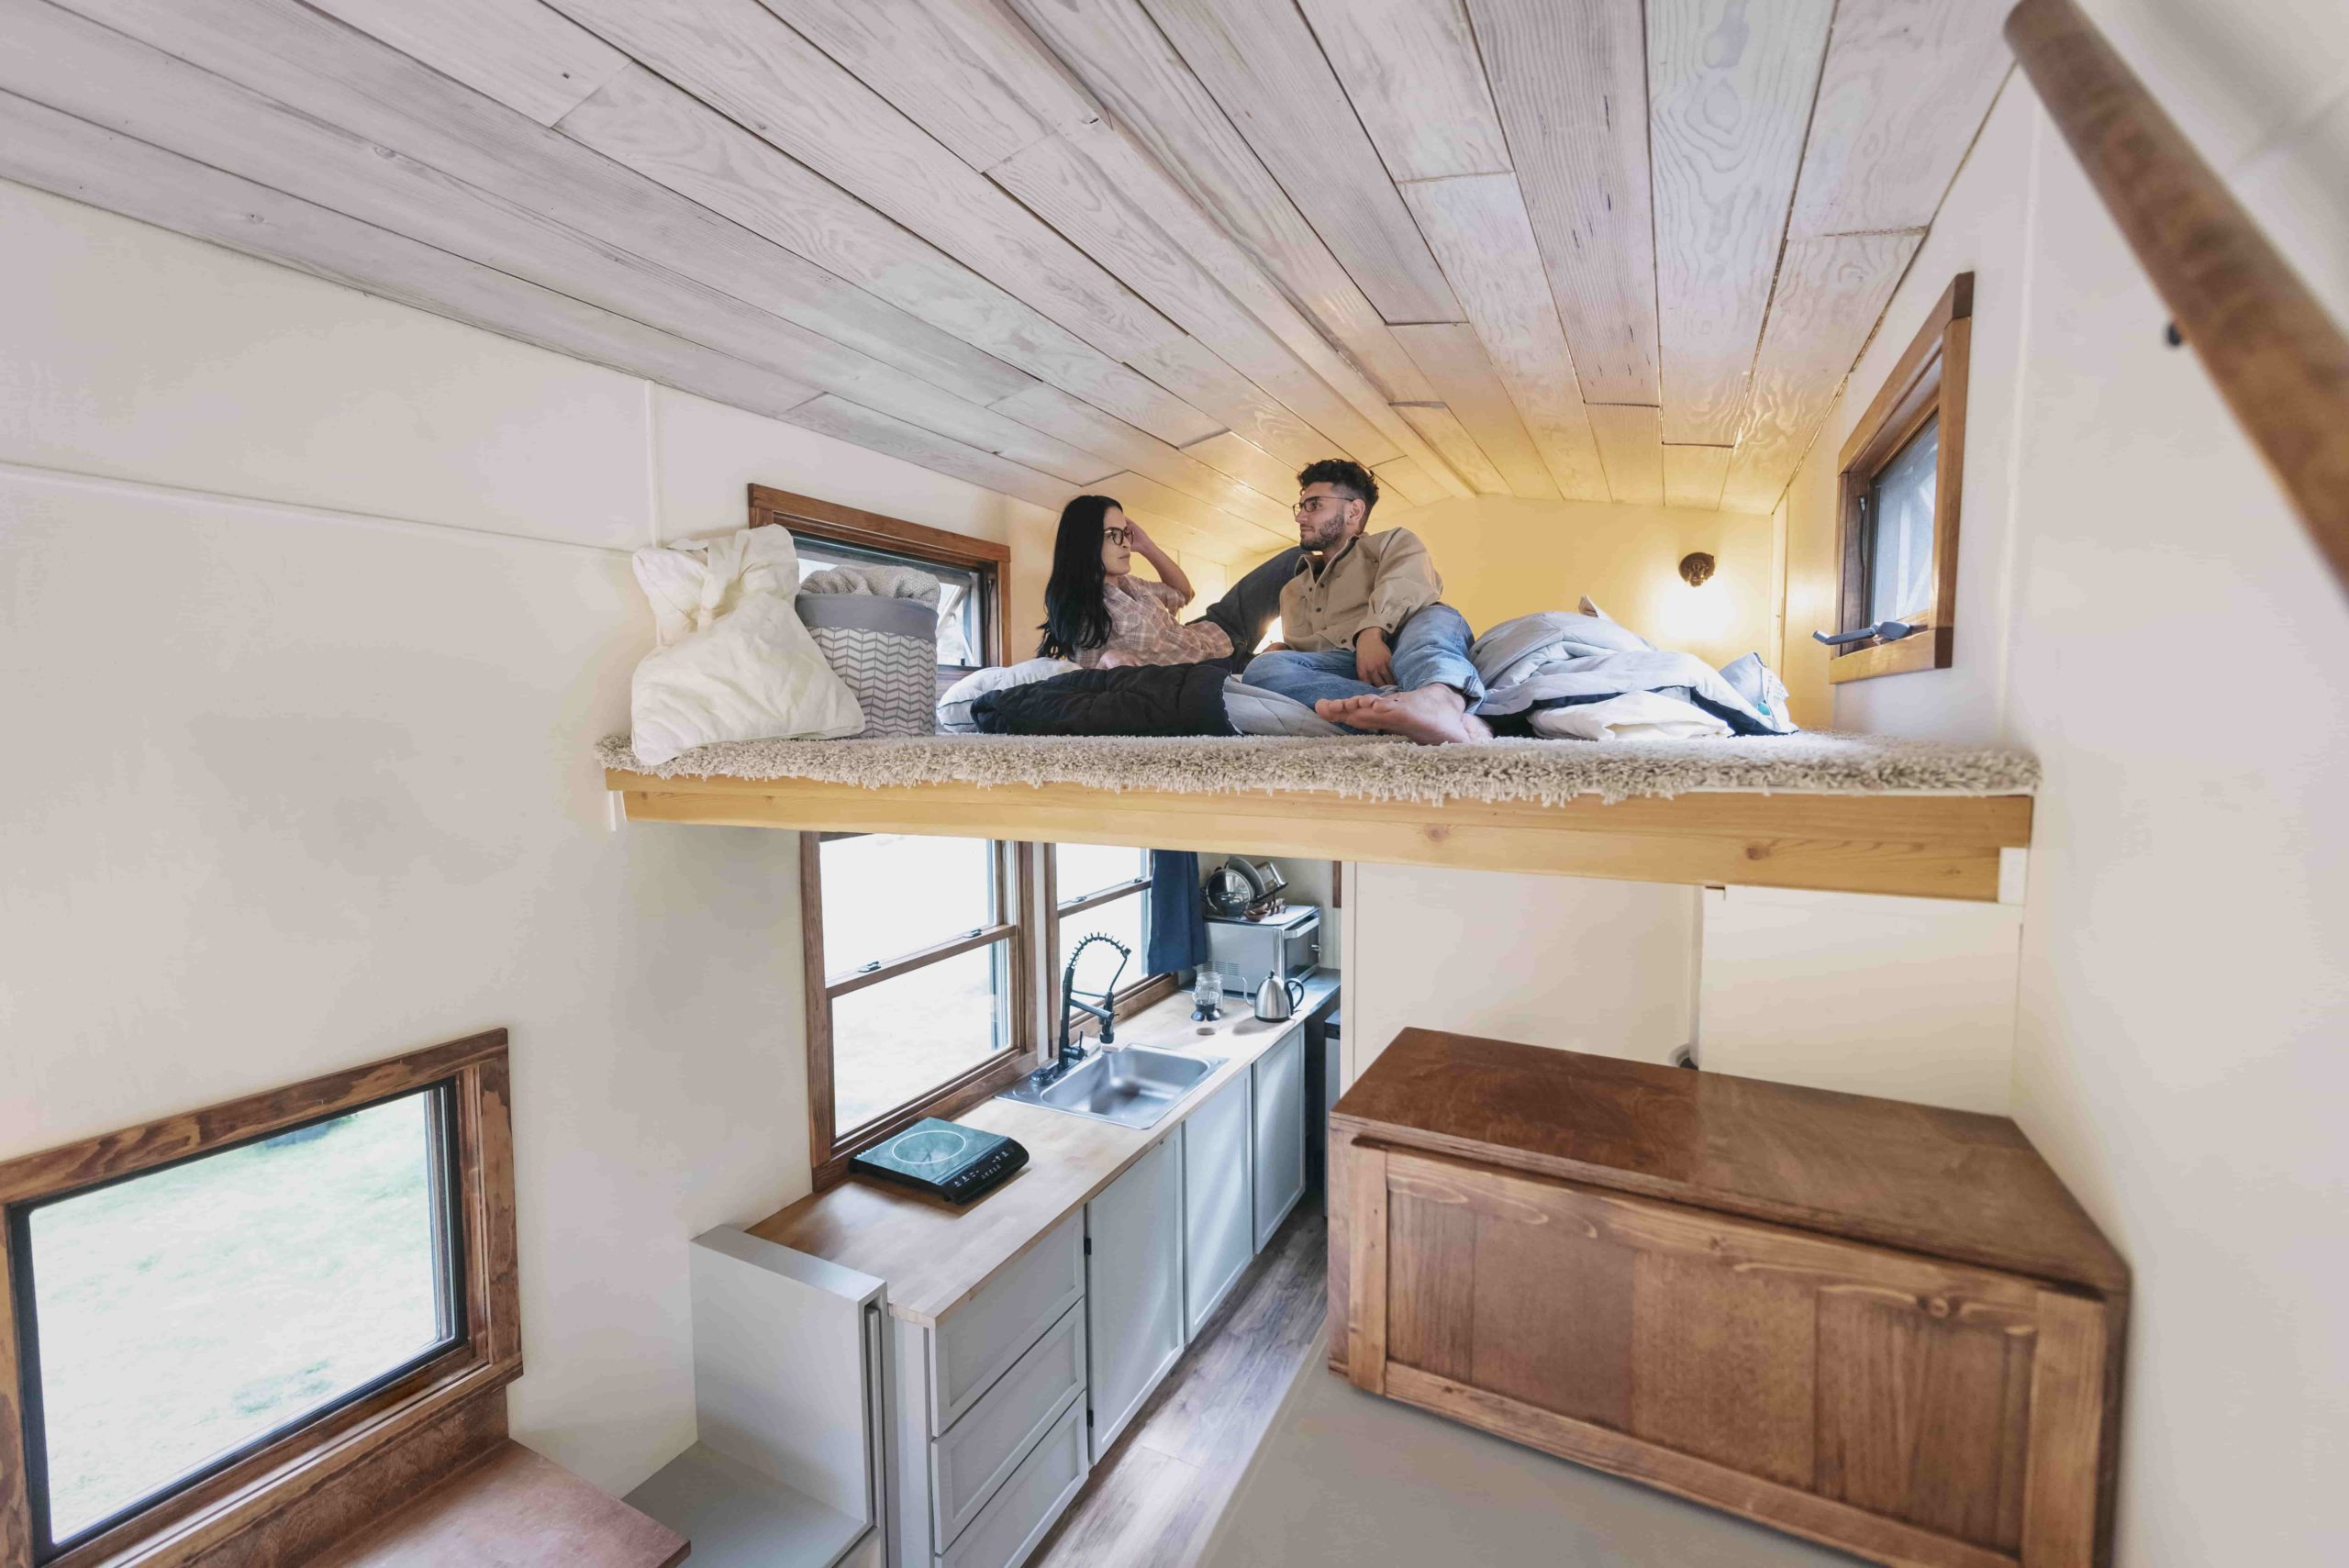 Tiny Homes: What Is the True Cost of Living Small?